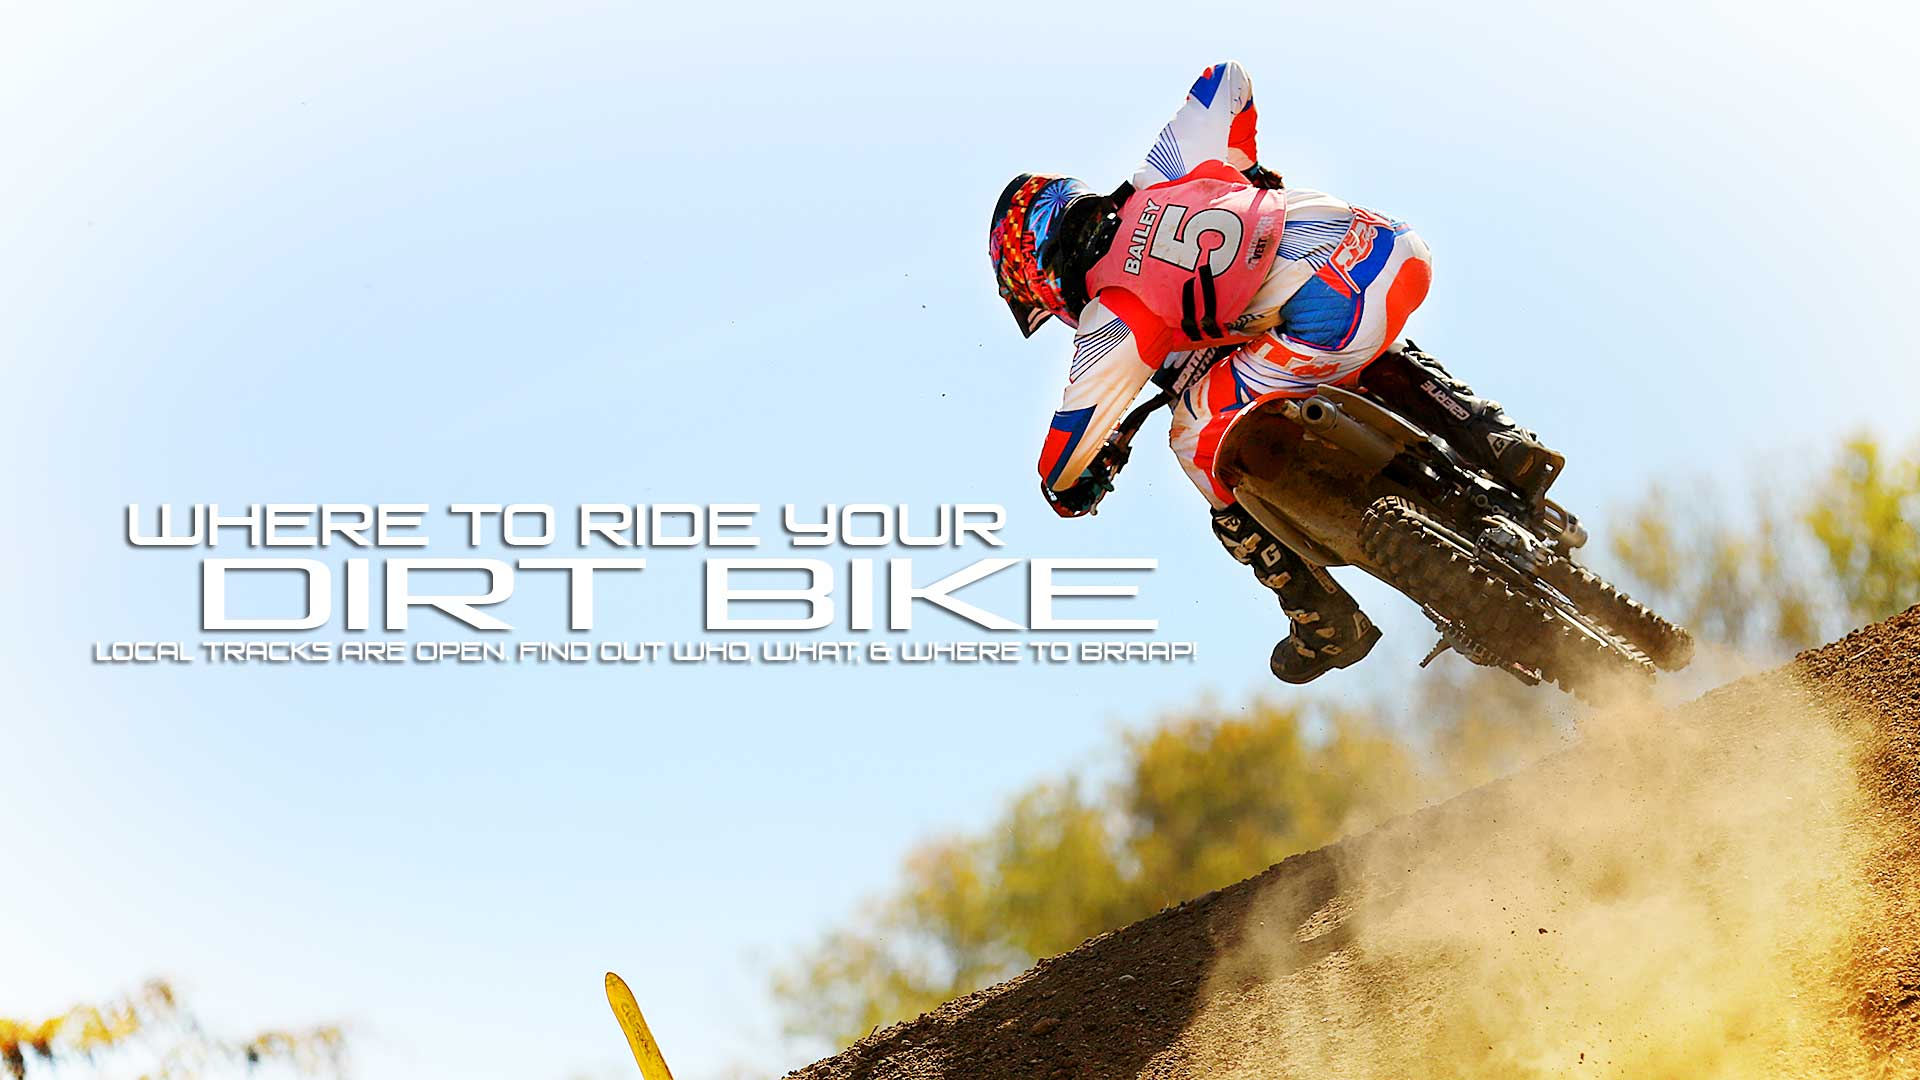 Where to Ride Your Dirt Bike This Weekend: March 19-20